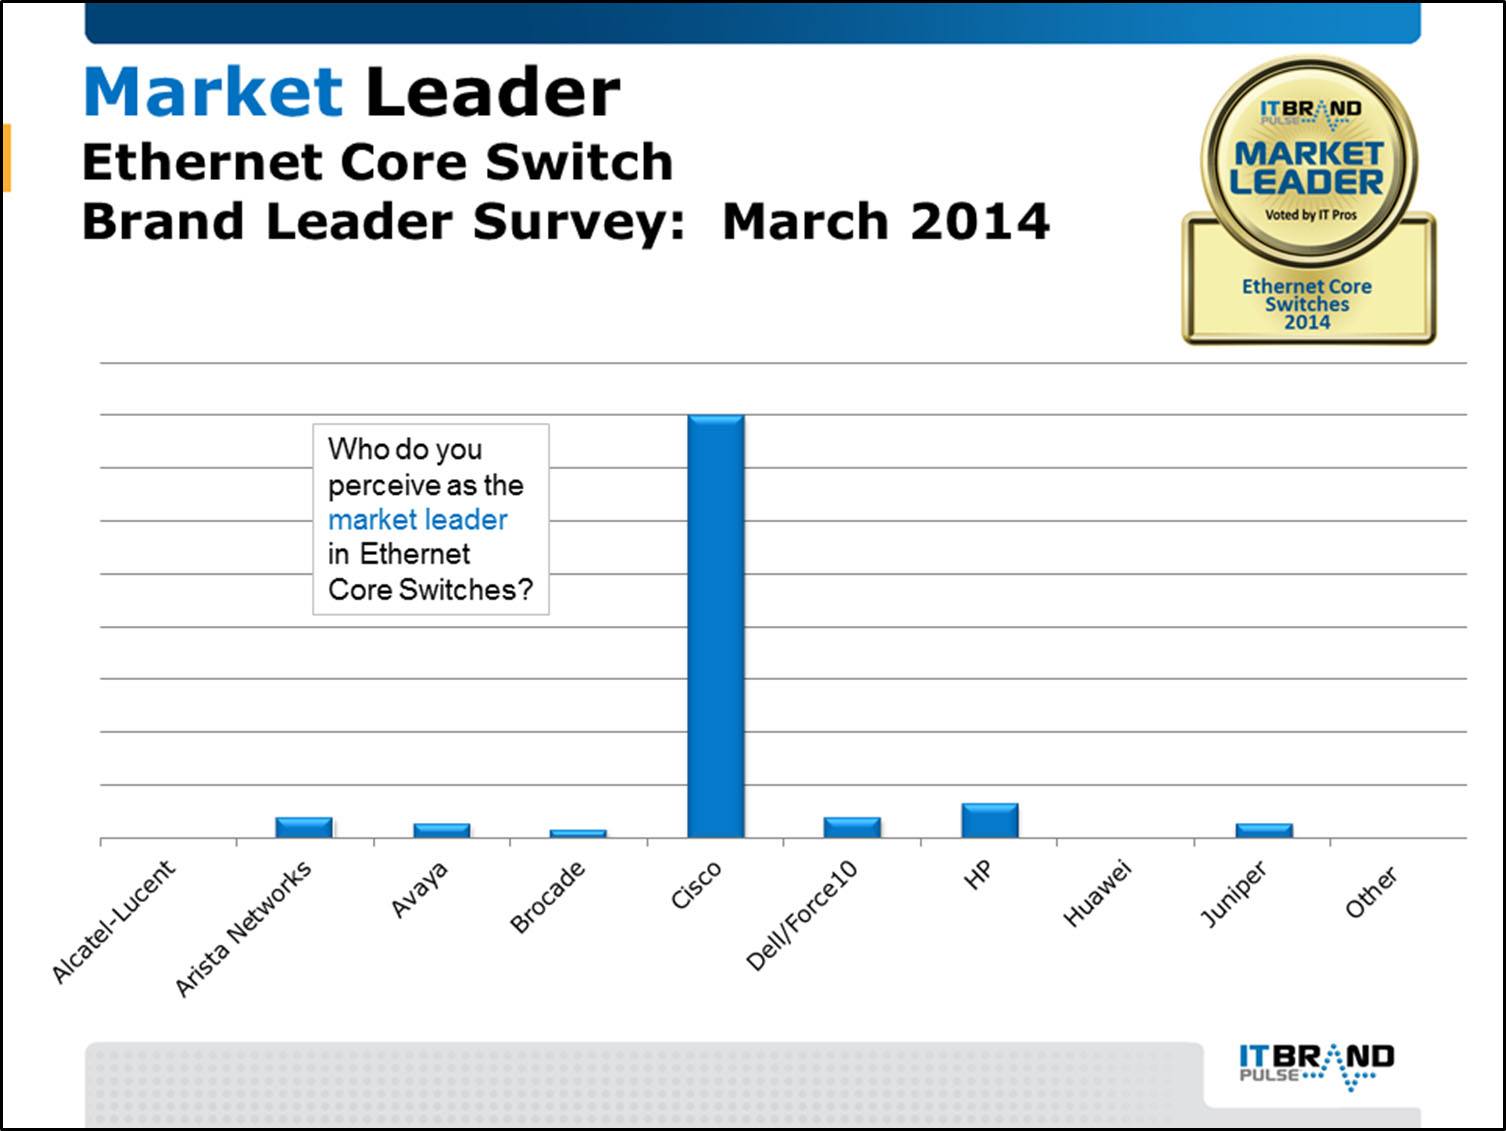 2014 Brand Leader Survey Results - IT Brand Pulse